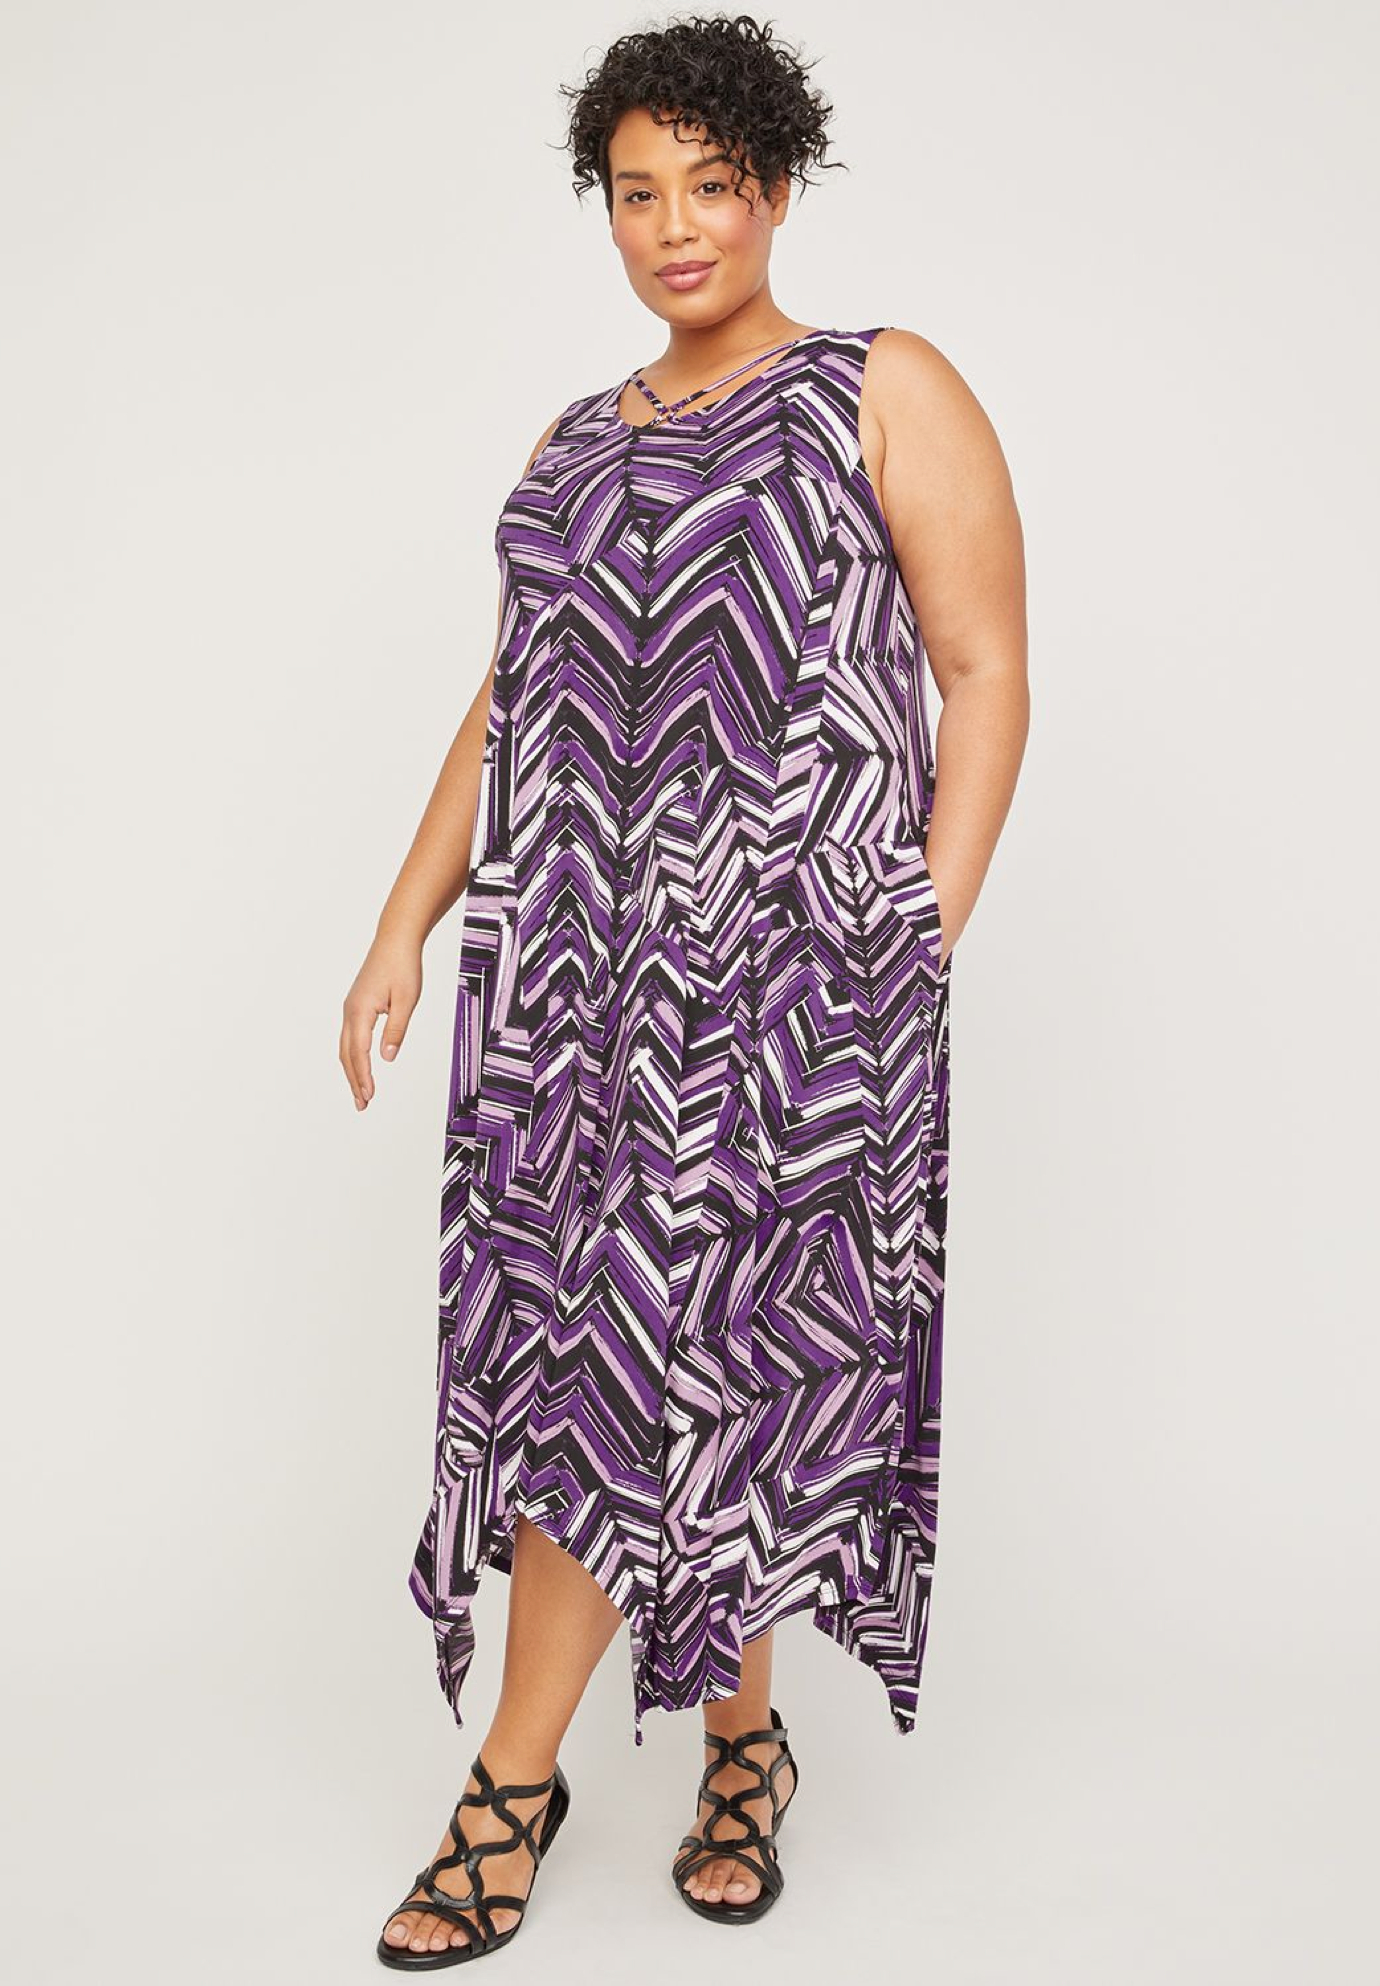 AnyWear Floating Hoop A-Line Dress (With Pockets),